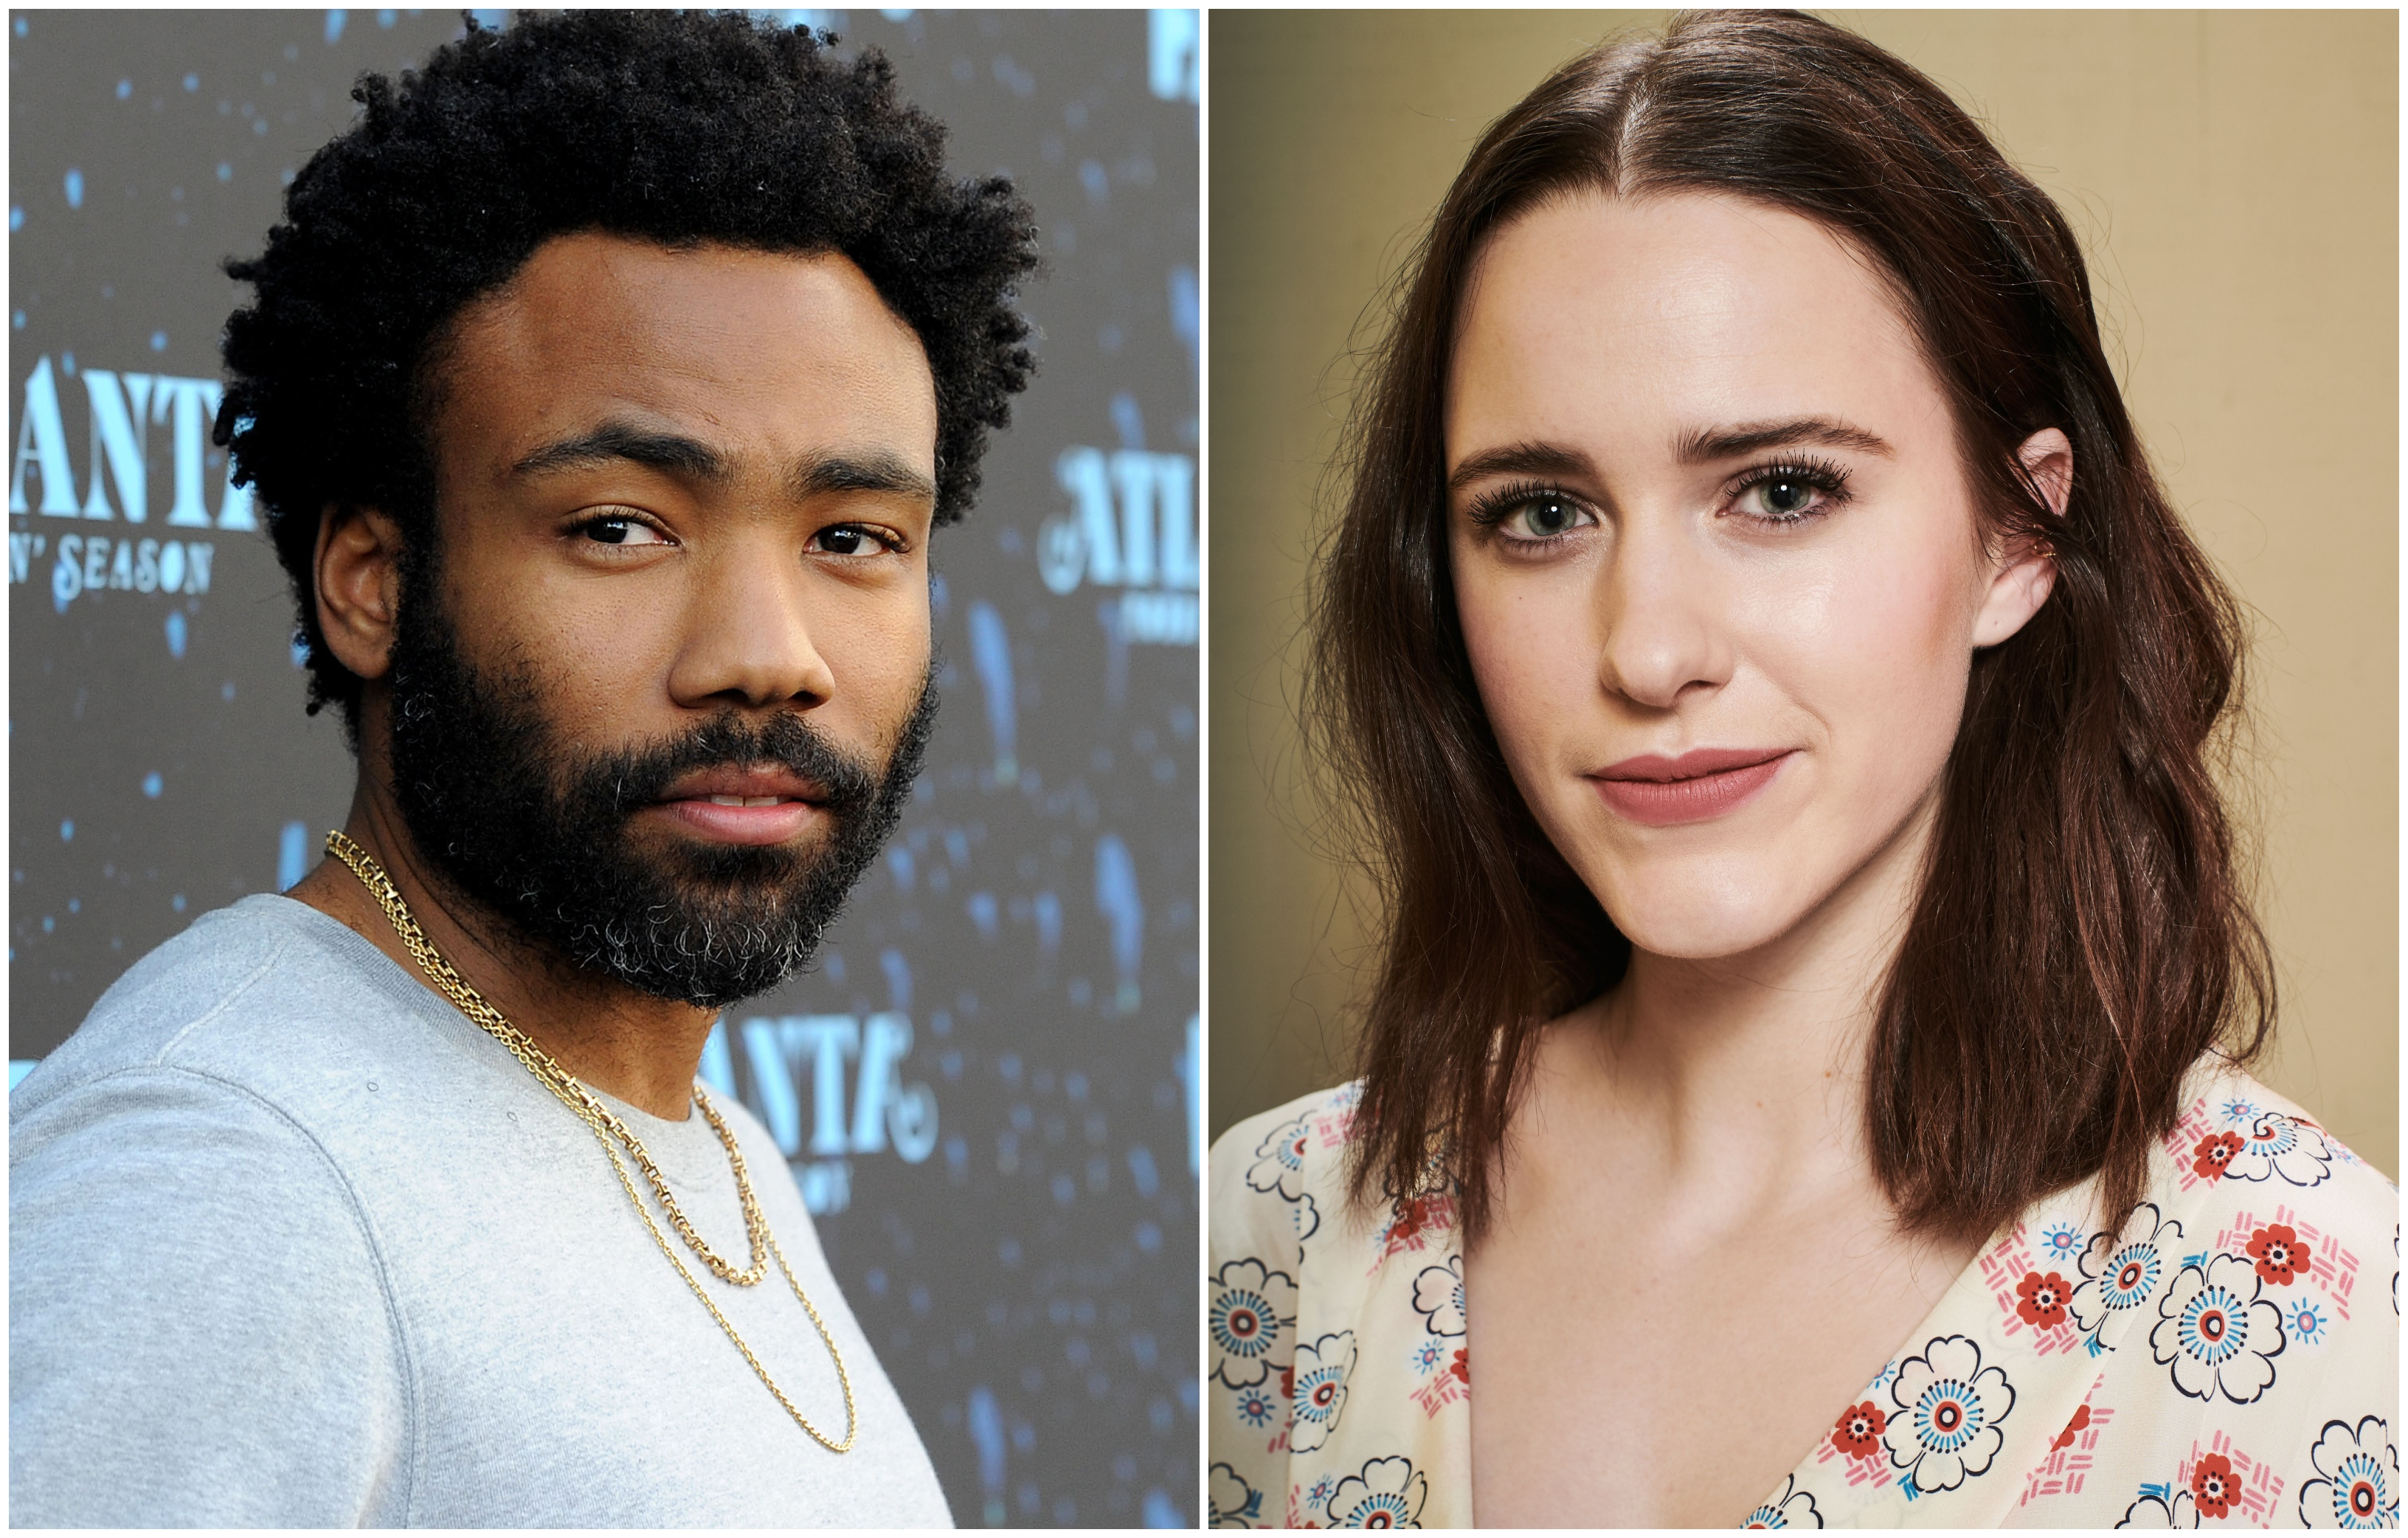 emmys donald glover and rachel brosnahan appear to be comedy locks